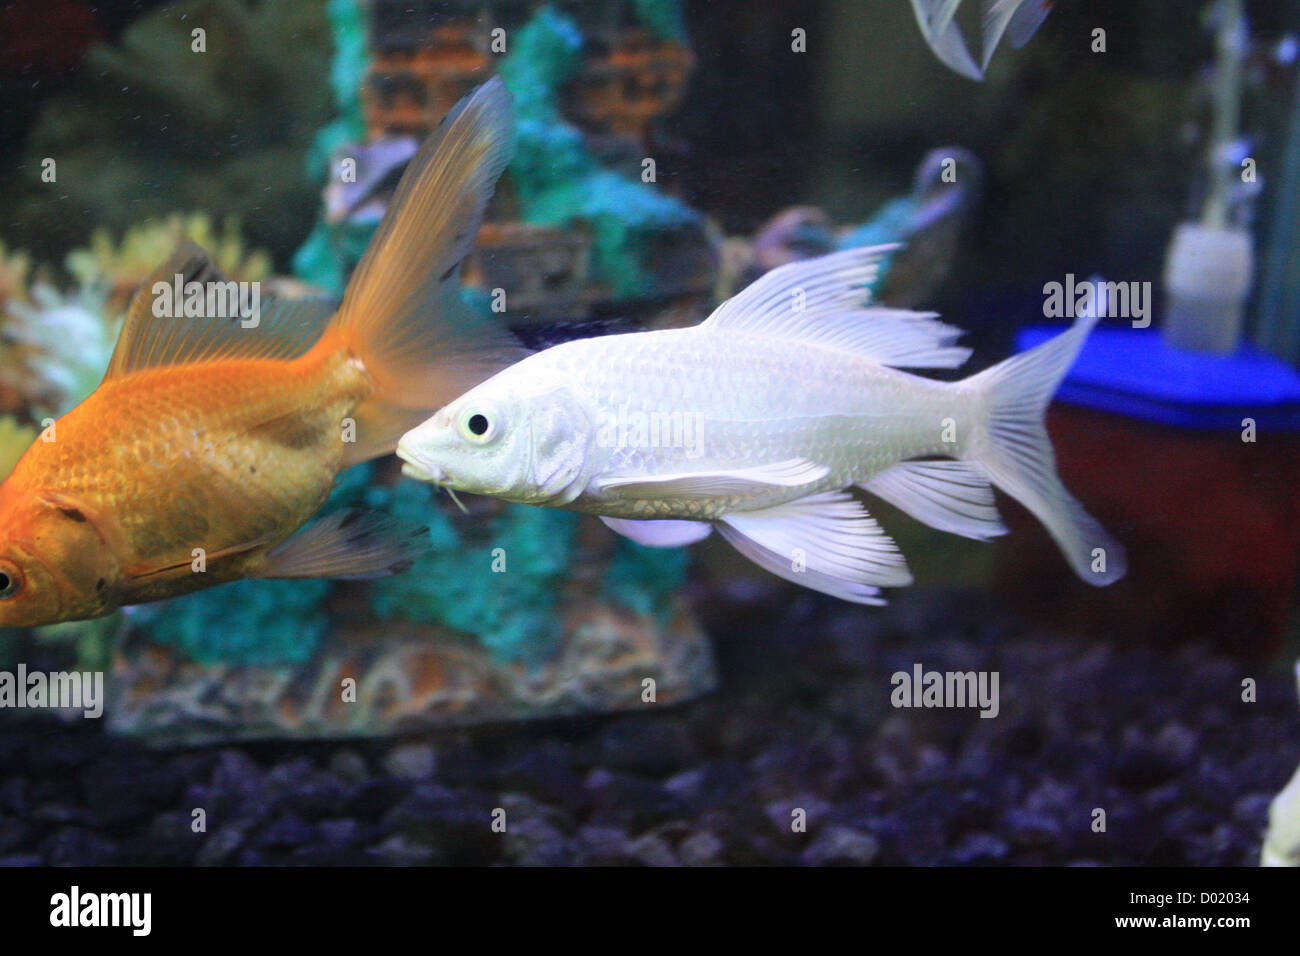 Freshwater fish for aquarium in india - Freshwater Fish Aquarium Fish Tropical Fish Pictures Of Fish Fish Tanks Fish For Sale All About Fish Salt Water Fish Che